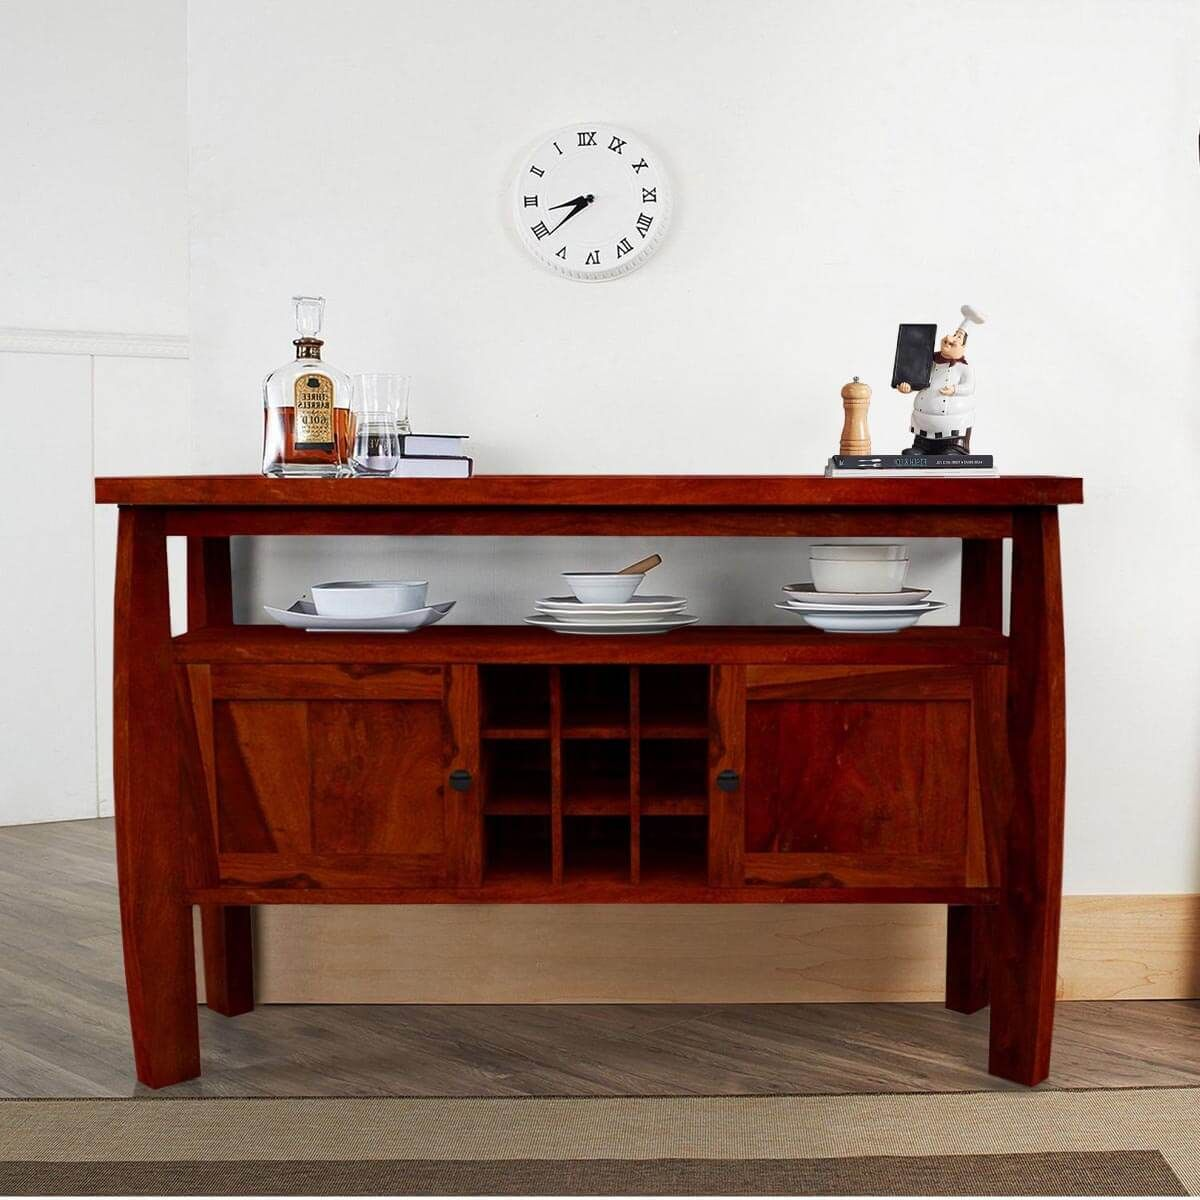 Contemporary Solid Wood Dining Room Bar Buffet Cabinet Solid Wood Dining Room Rustic Console Tables Rustic Consoles